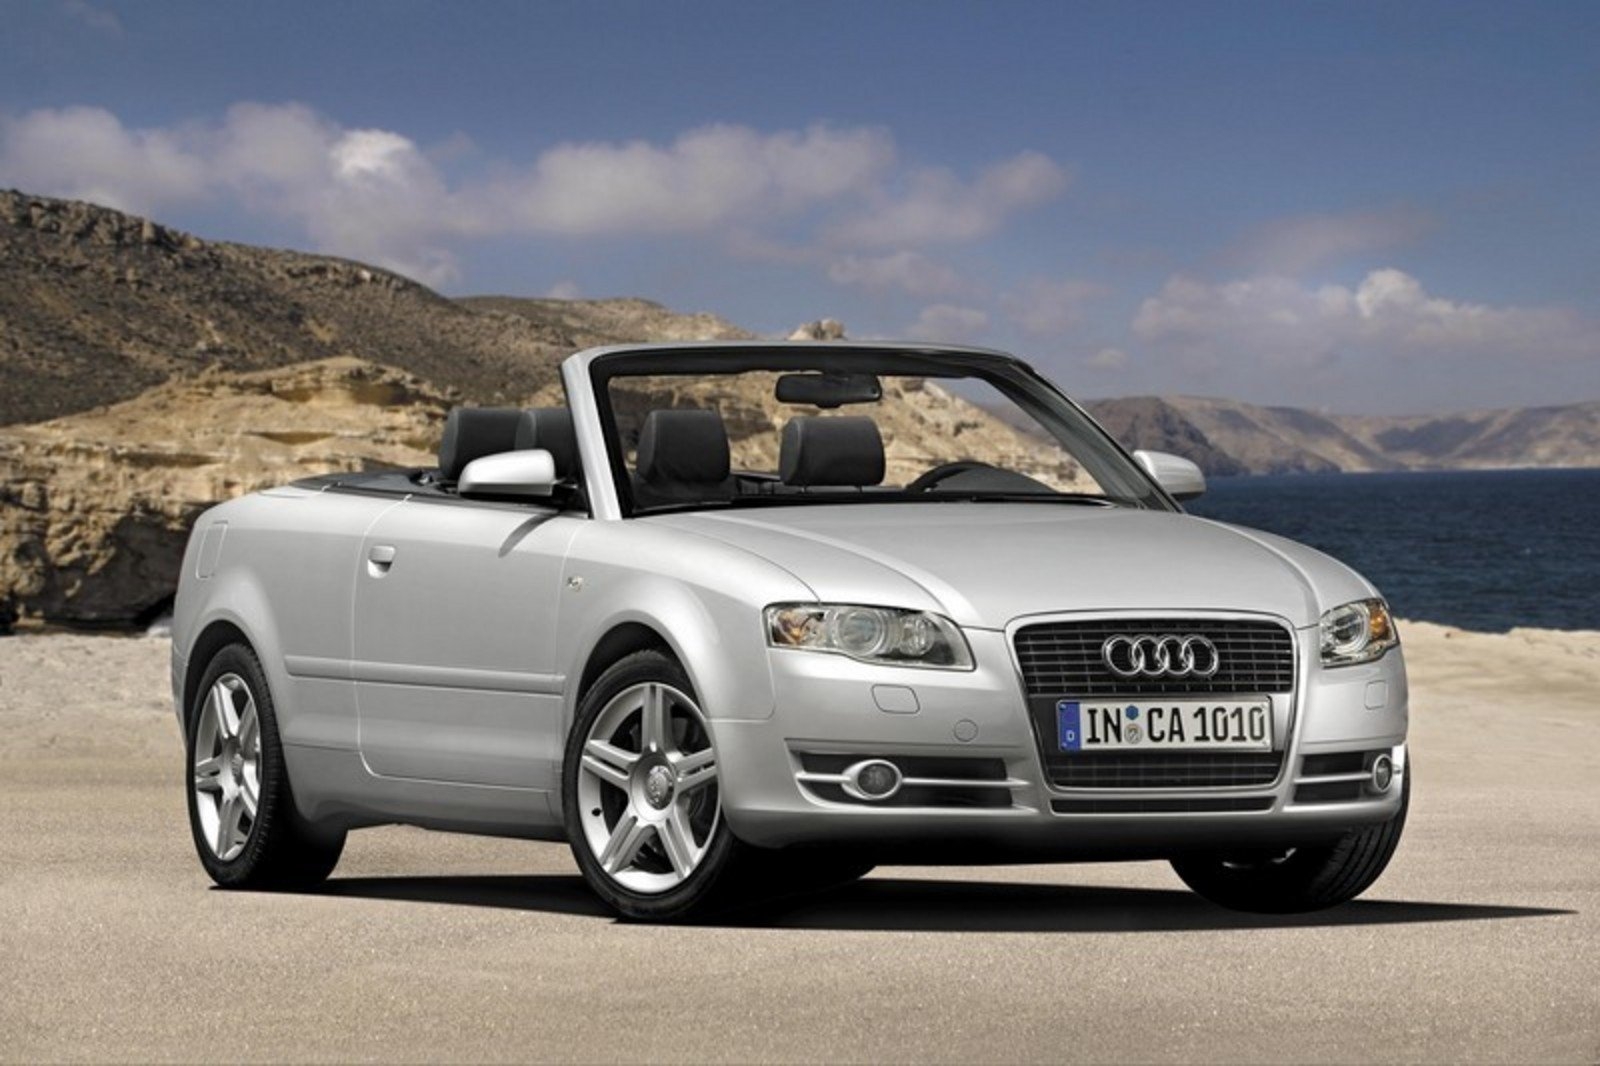 2007 audi a4 convertible review top speed. Black Bedroom Furniture Sets. Home Design Ideas